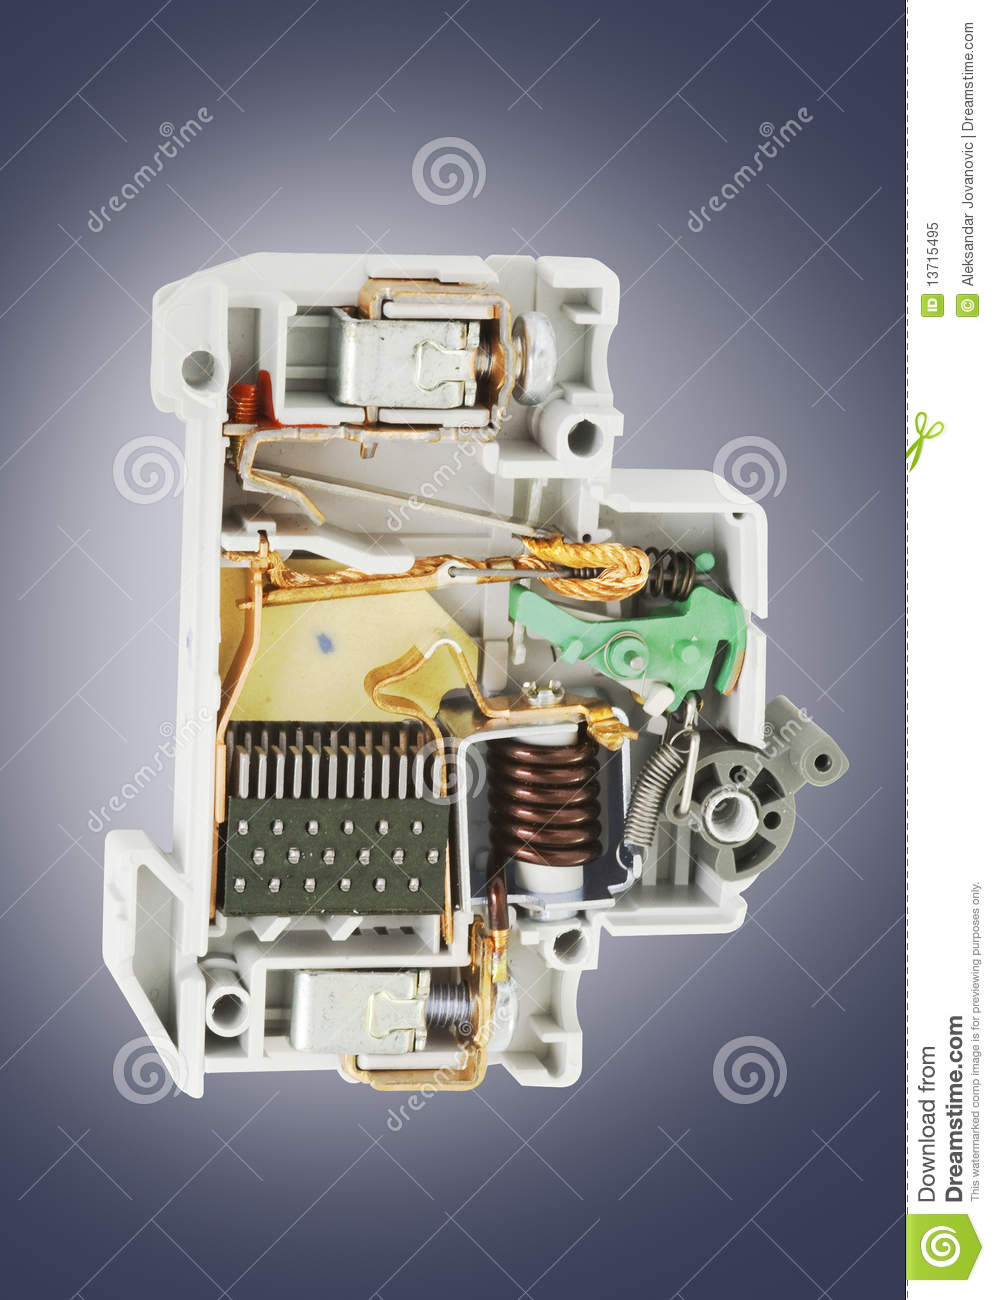 automatic circuit breaker cross section stock image image of rh dreamstime com